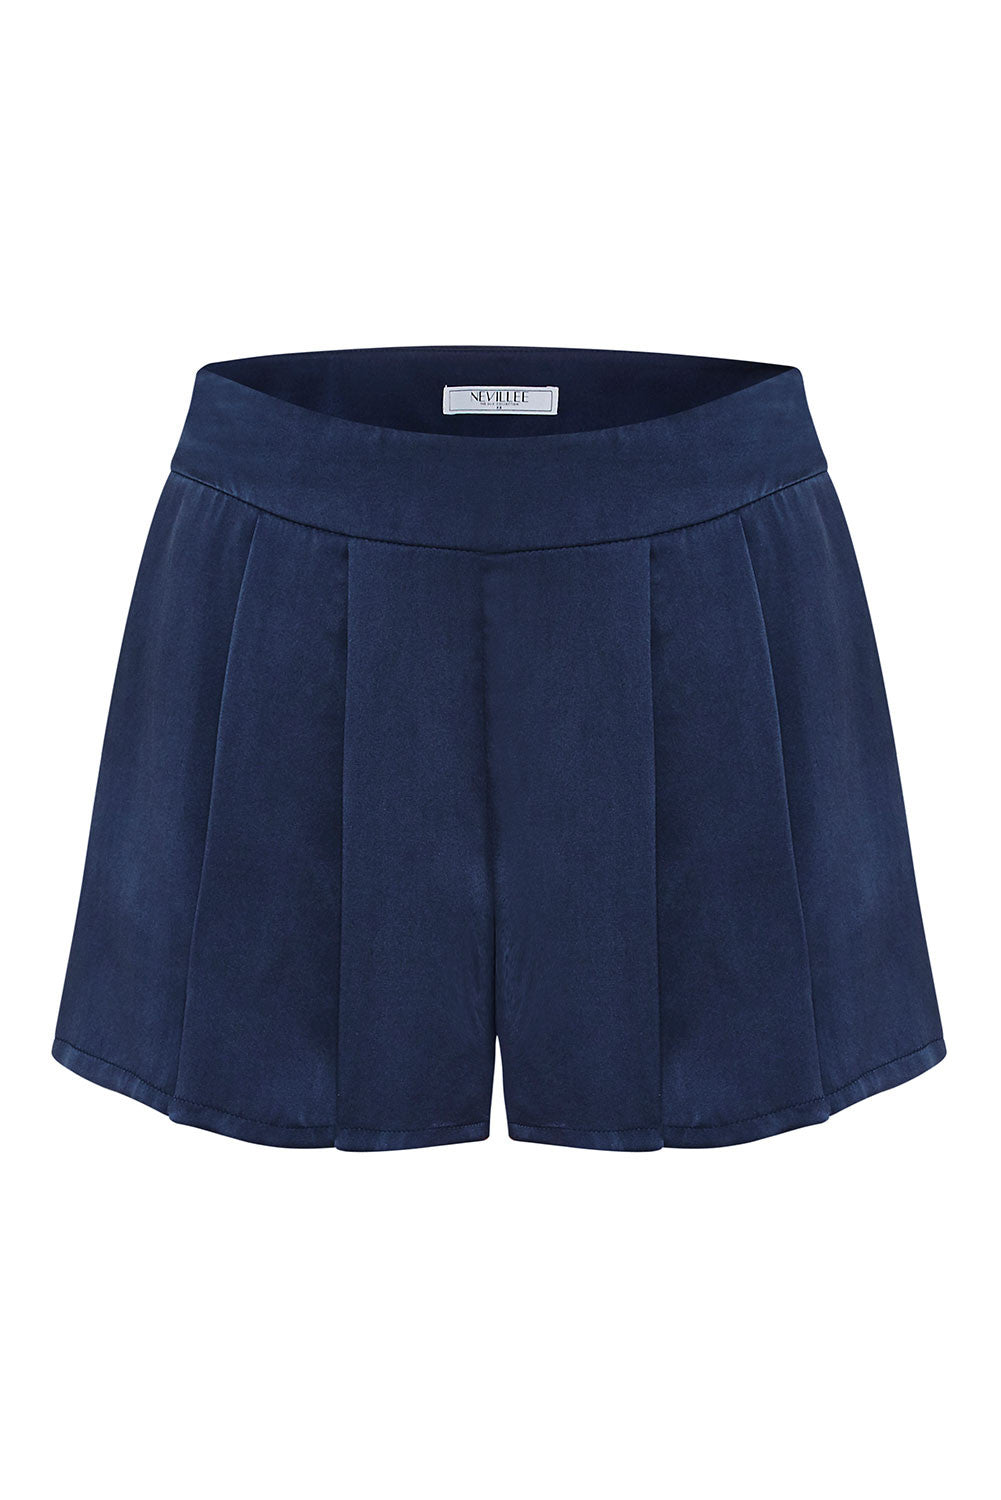 SILK SHORTS - MIDNIGHT BLUE